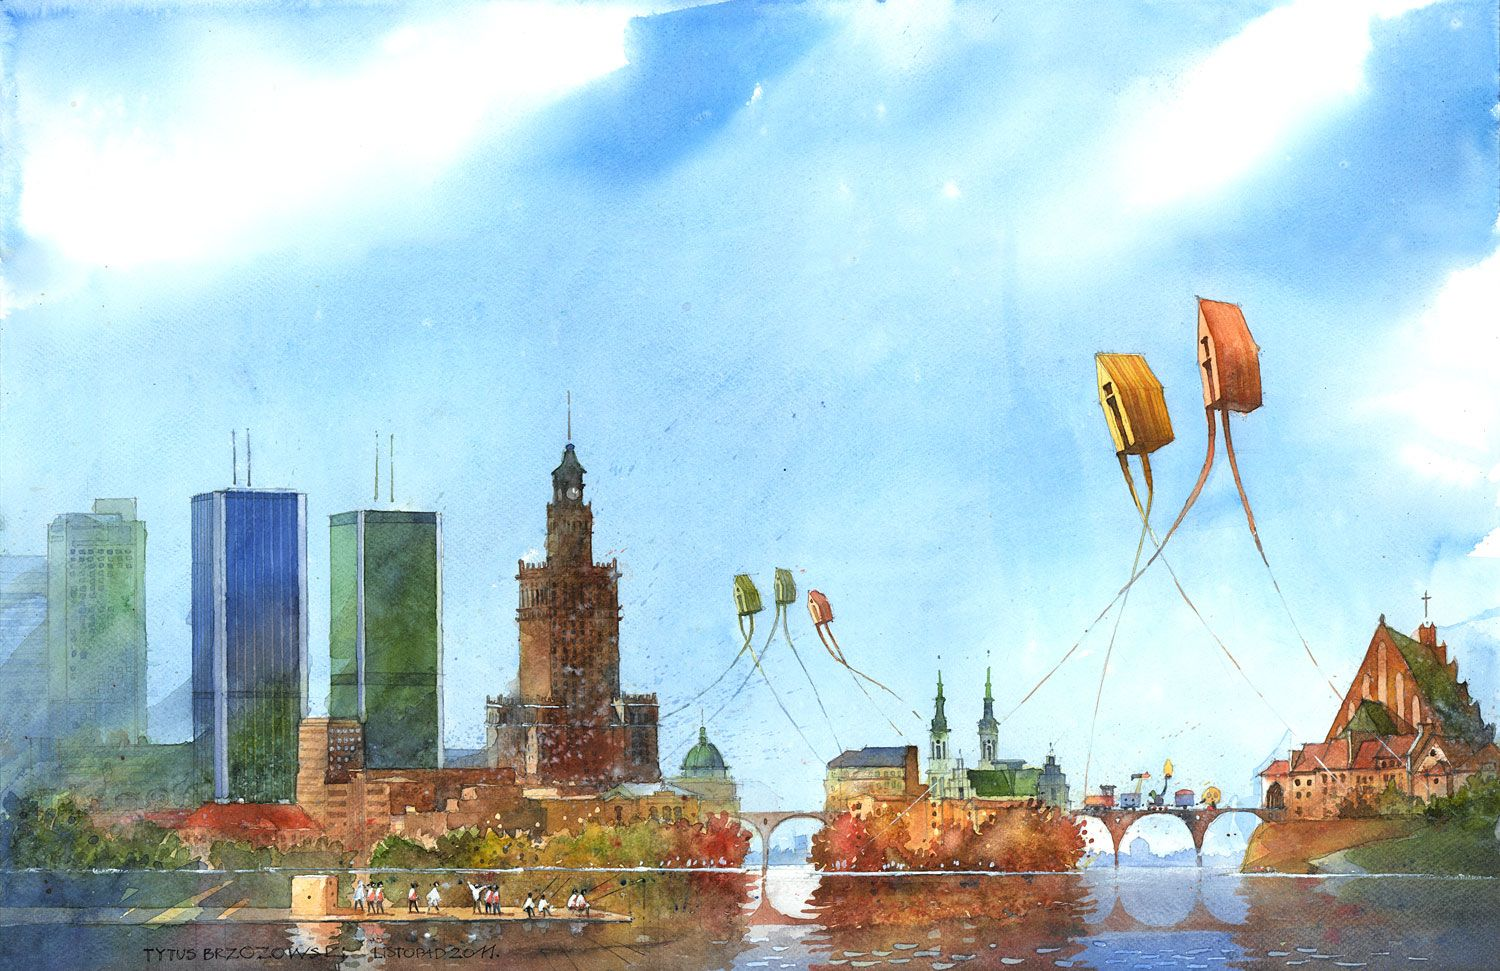 Warsaw as a group of urban islands. 2011